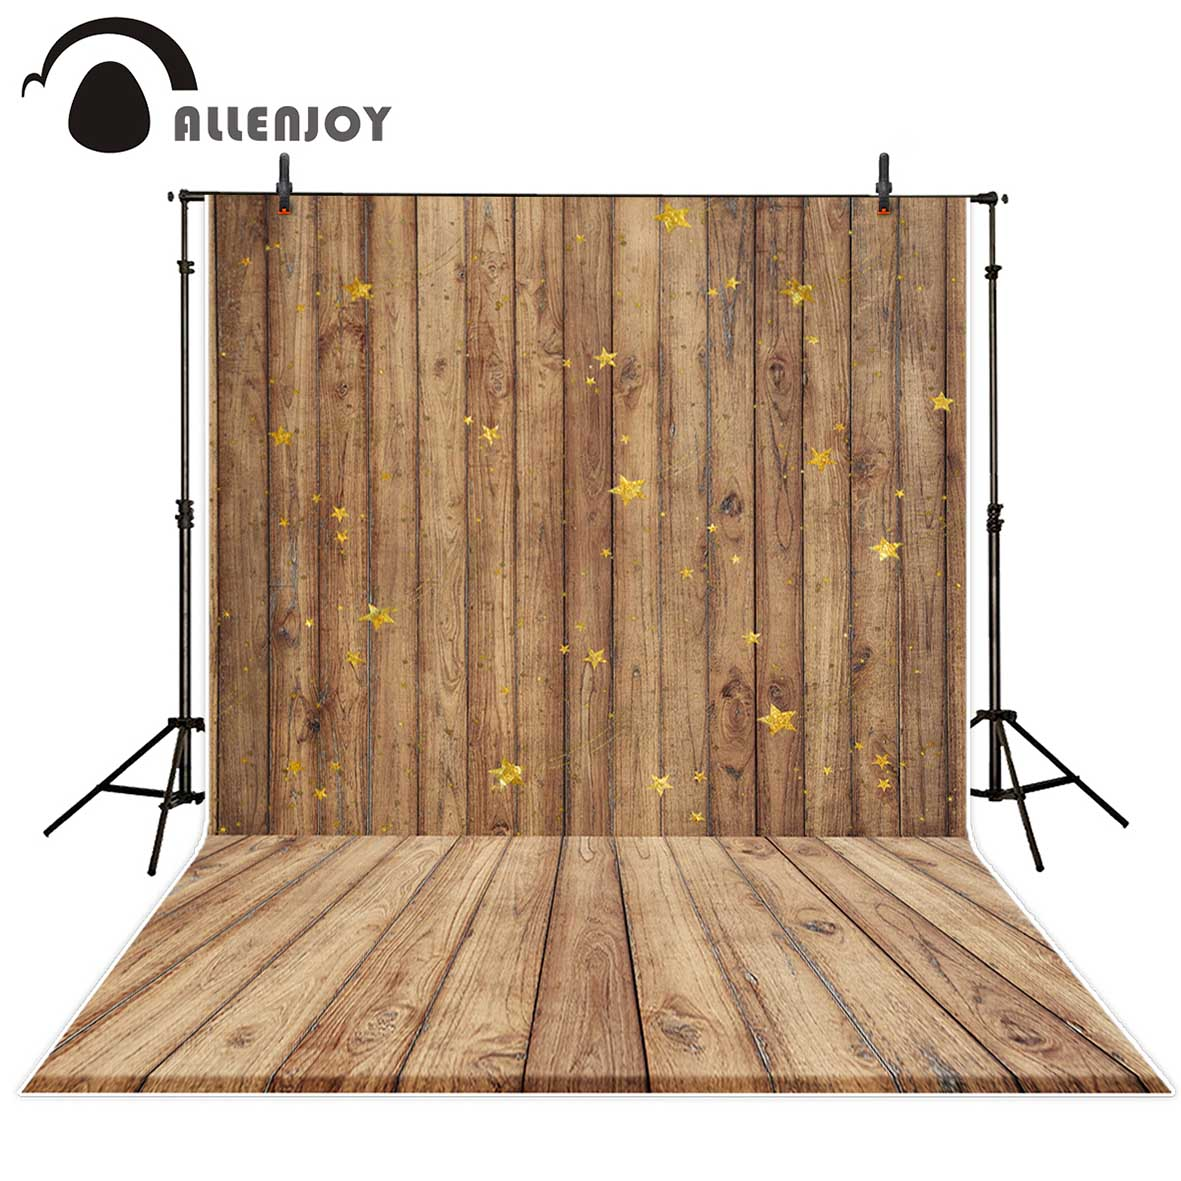 Allenjoy photography backdrops glitter Shiny stars brown wooden board baby backgrounds for photo studio for a photo shoot